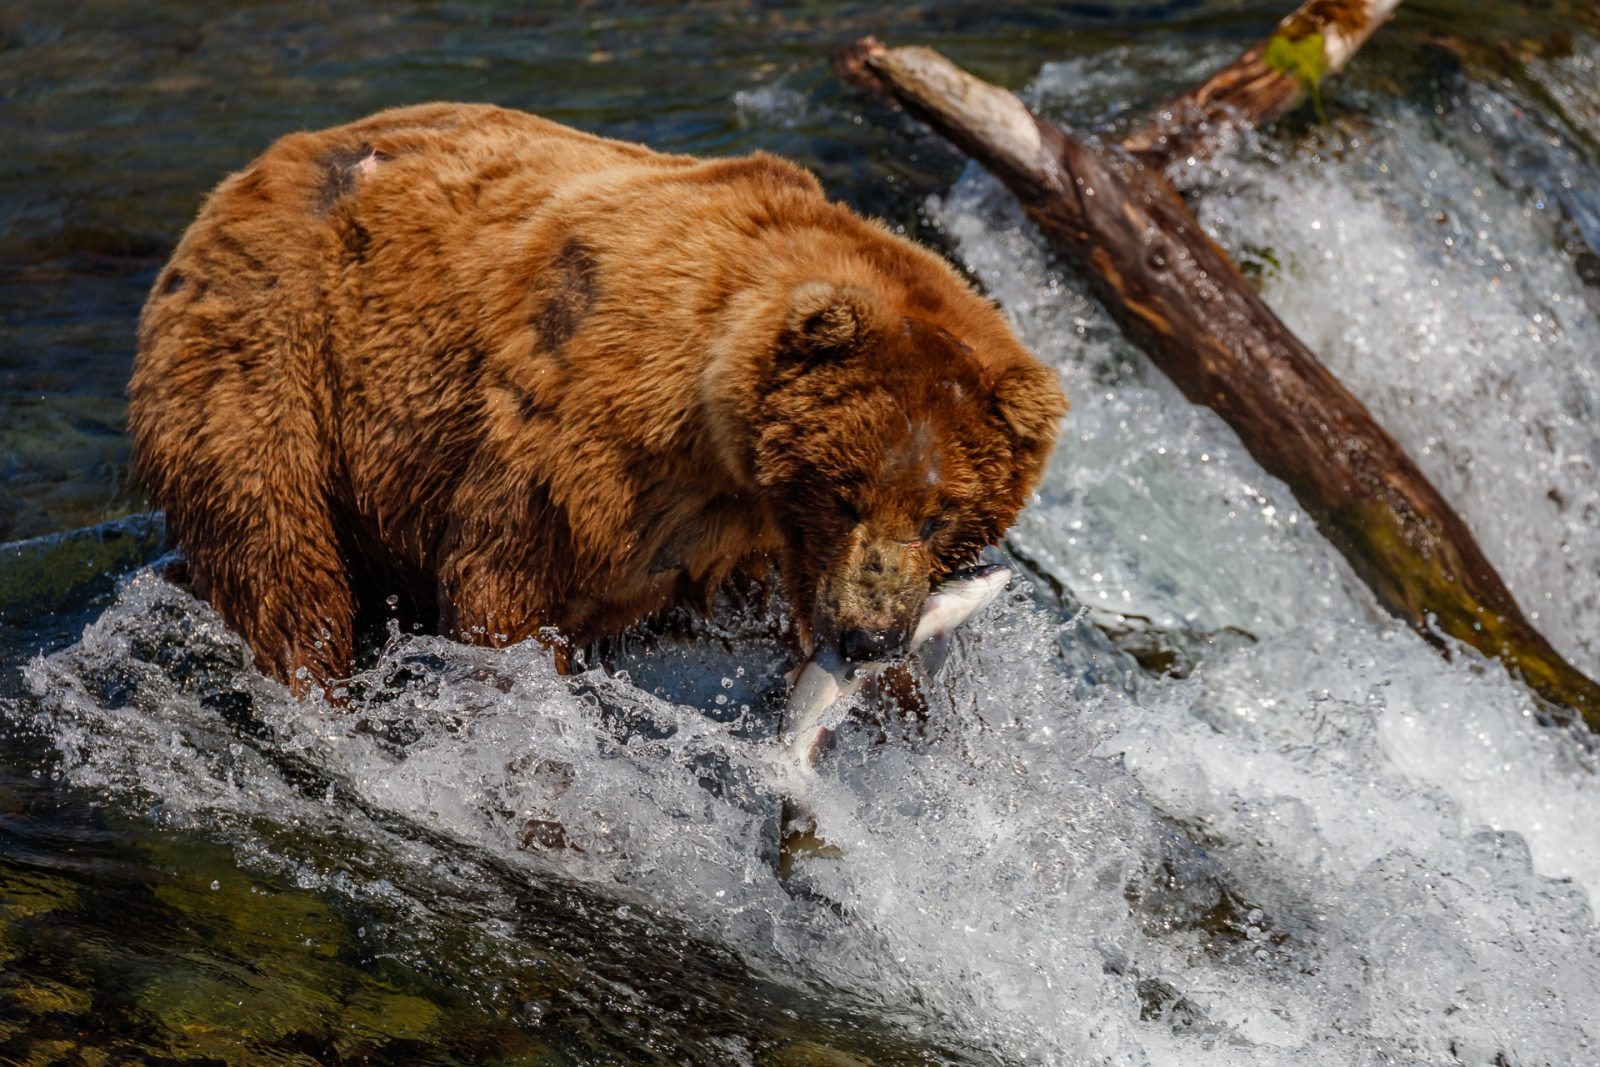 Bear and Salmon